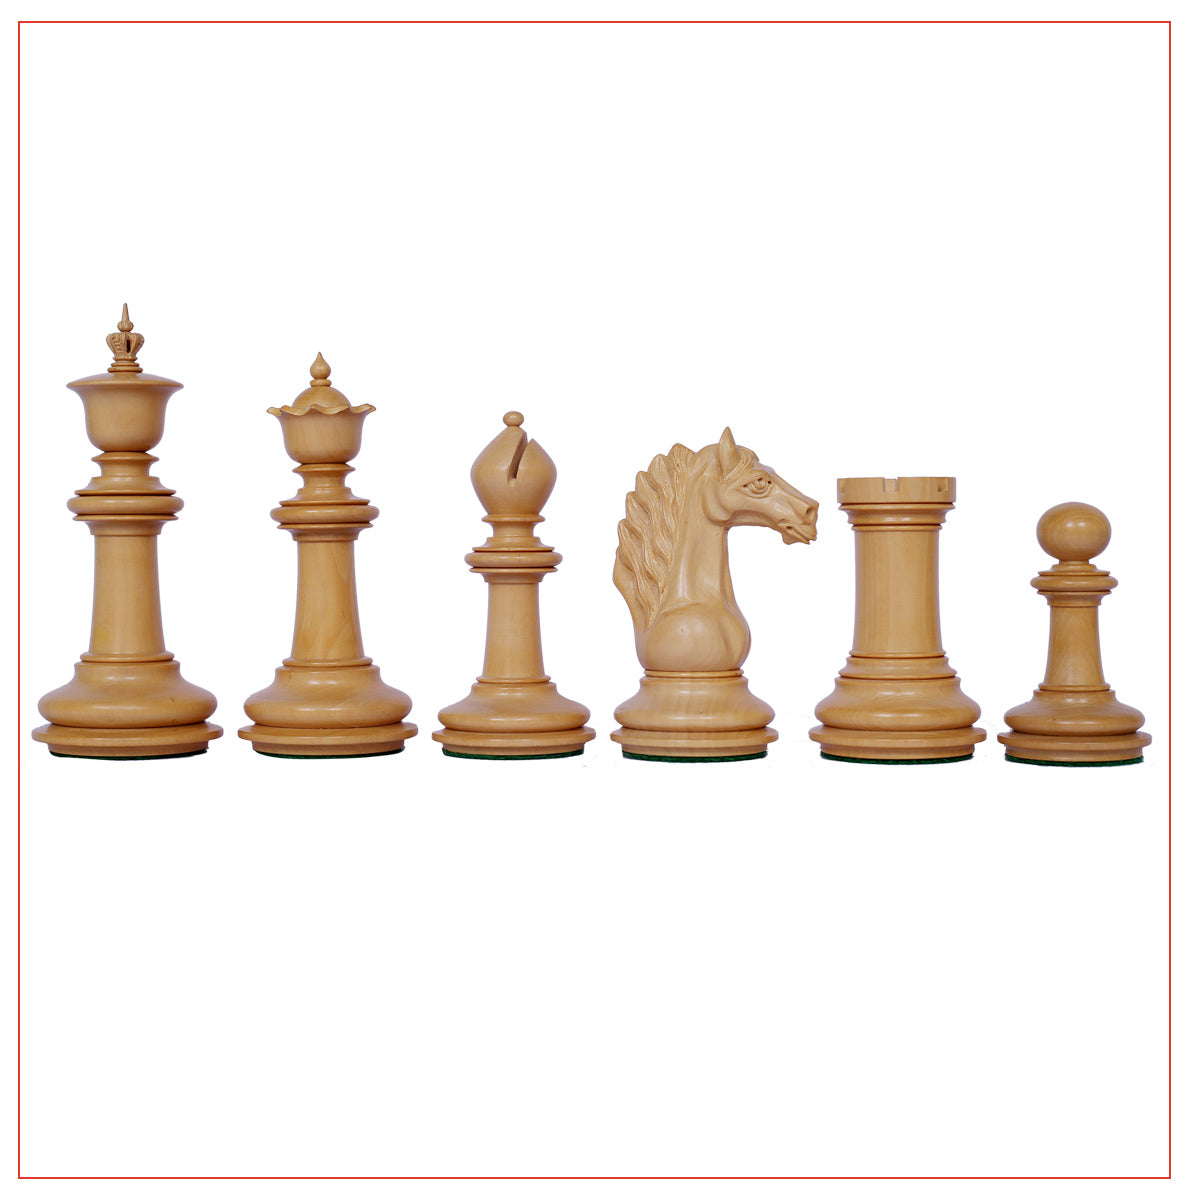 Macedon Series Premium Staunton 4.4 Chess set